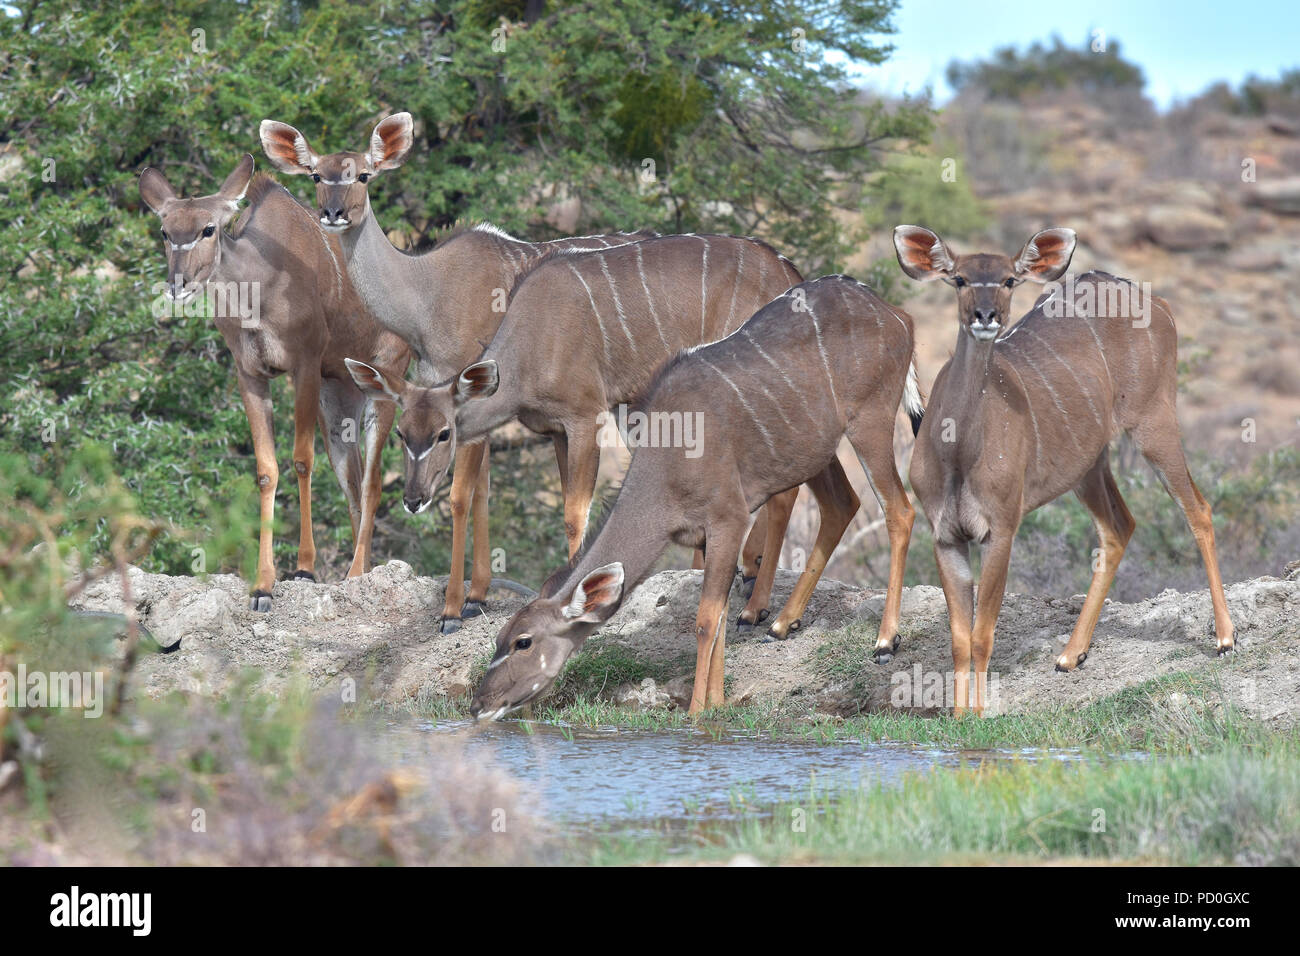 South Africa, a fantastic travel destination to experience third and first world together. Kudu cows drink wat waterhole in Karoo National Park. - Stock Image